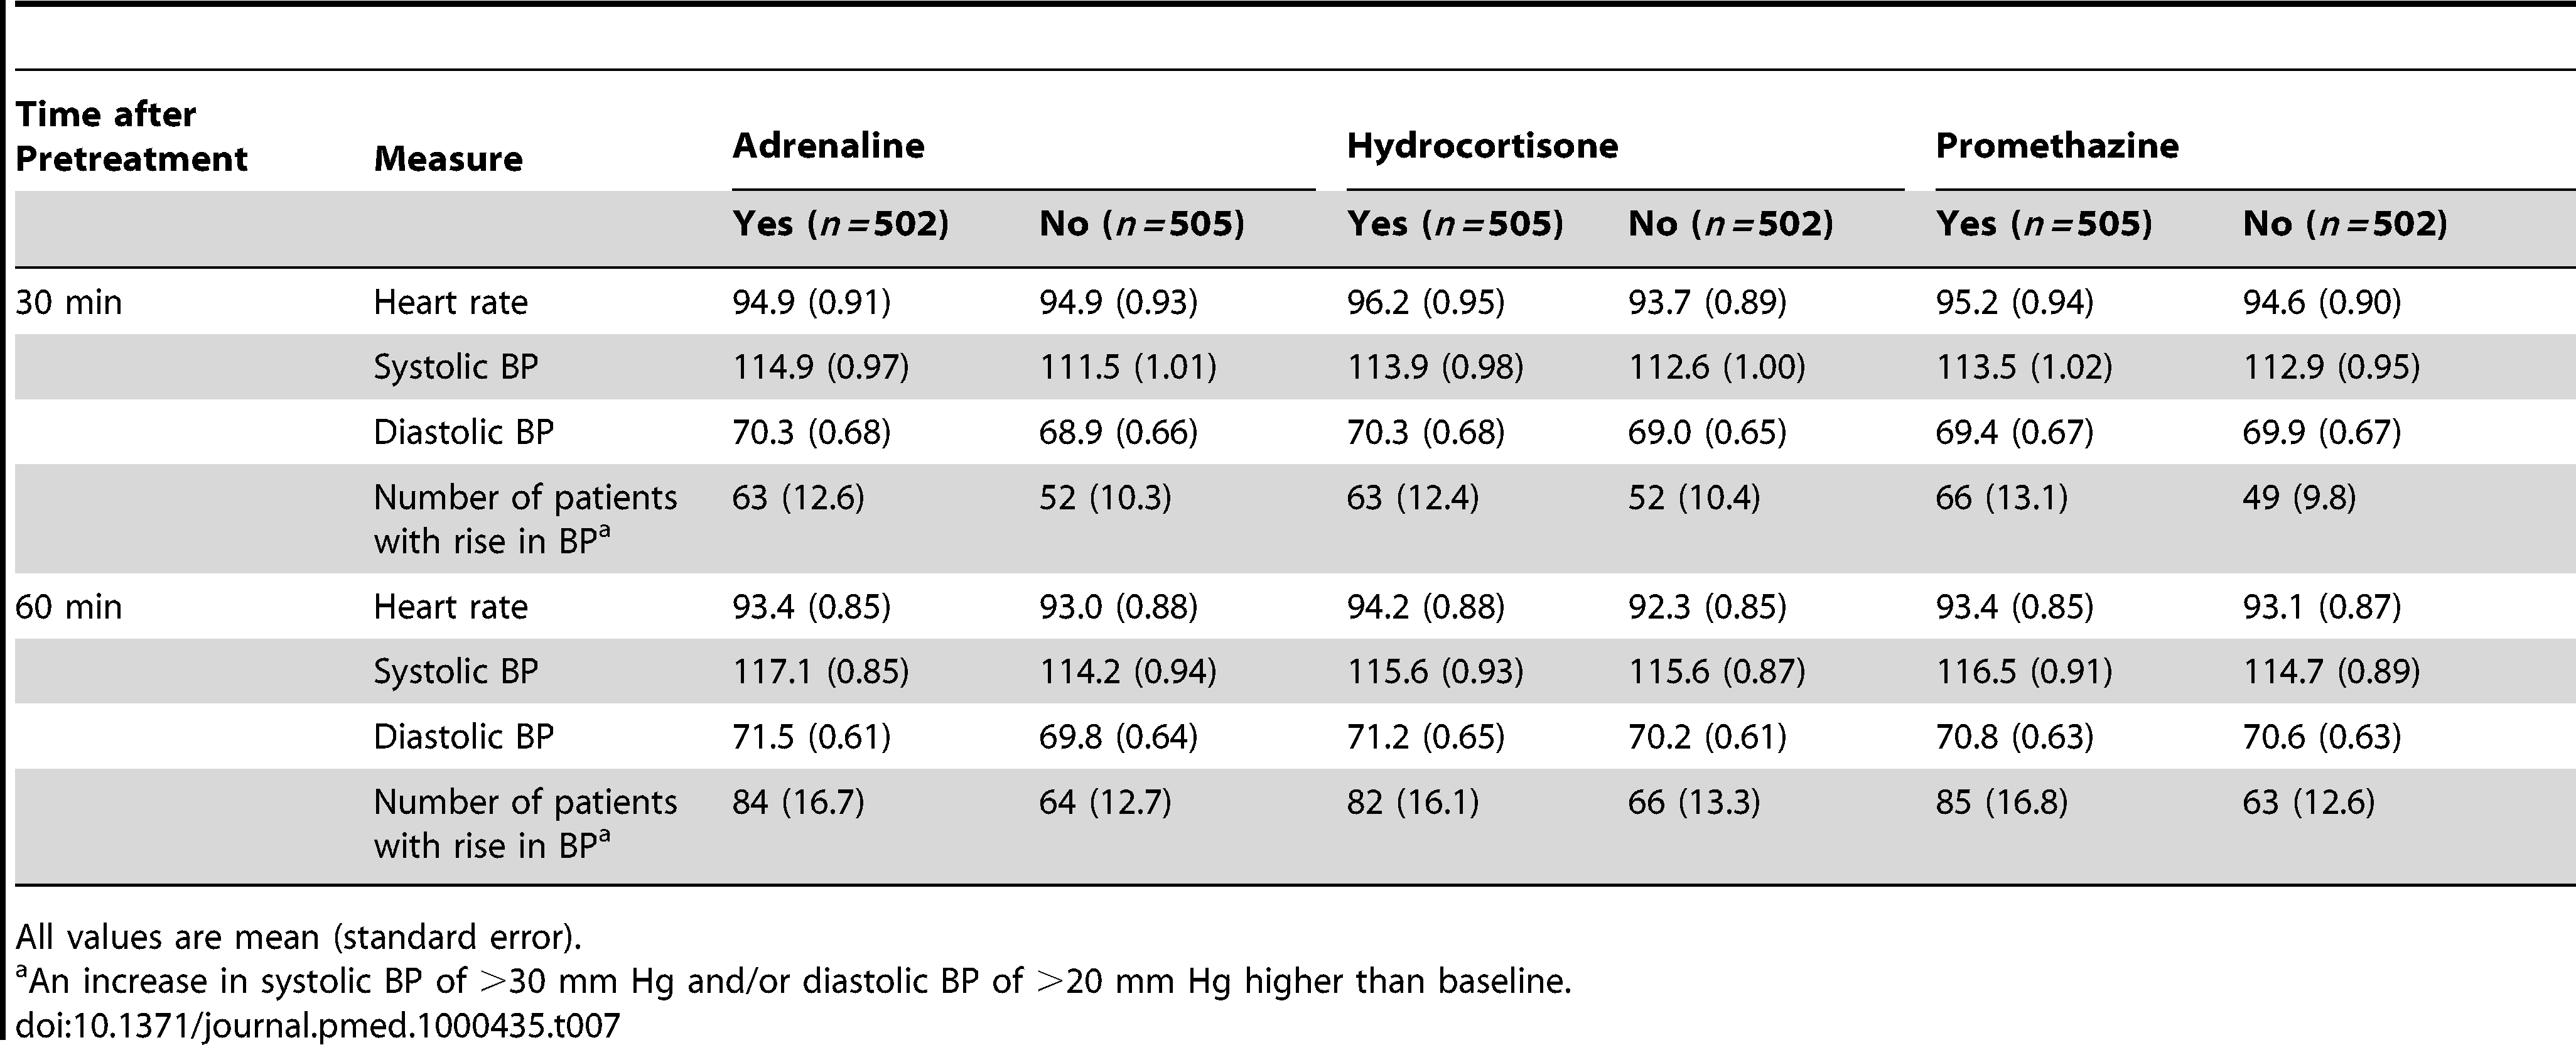 Heart rate, blood pressure, and number of patients with rise in blood pressure at 30 min and 60 min after pretreatment administered.